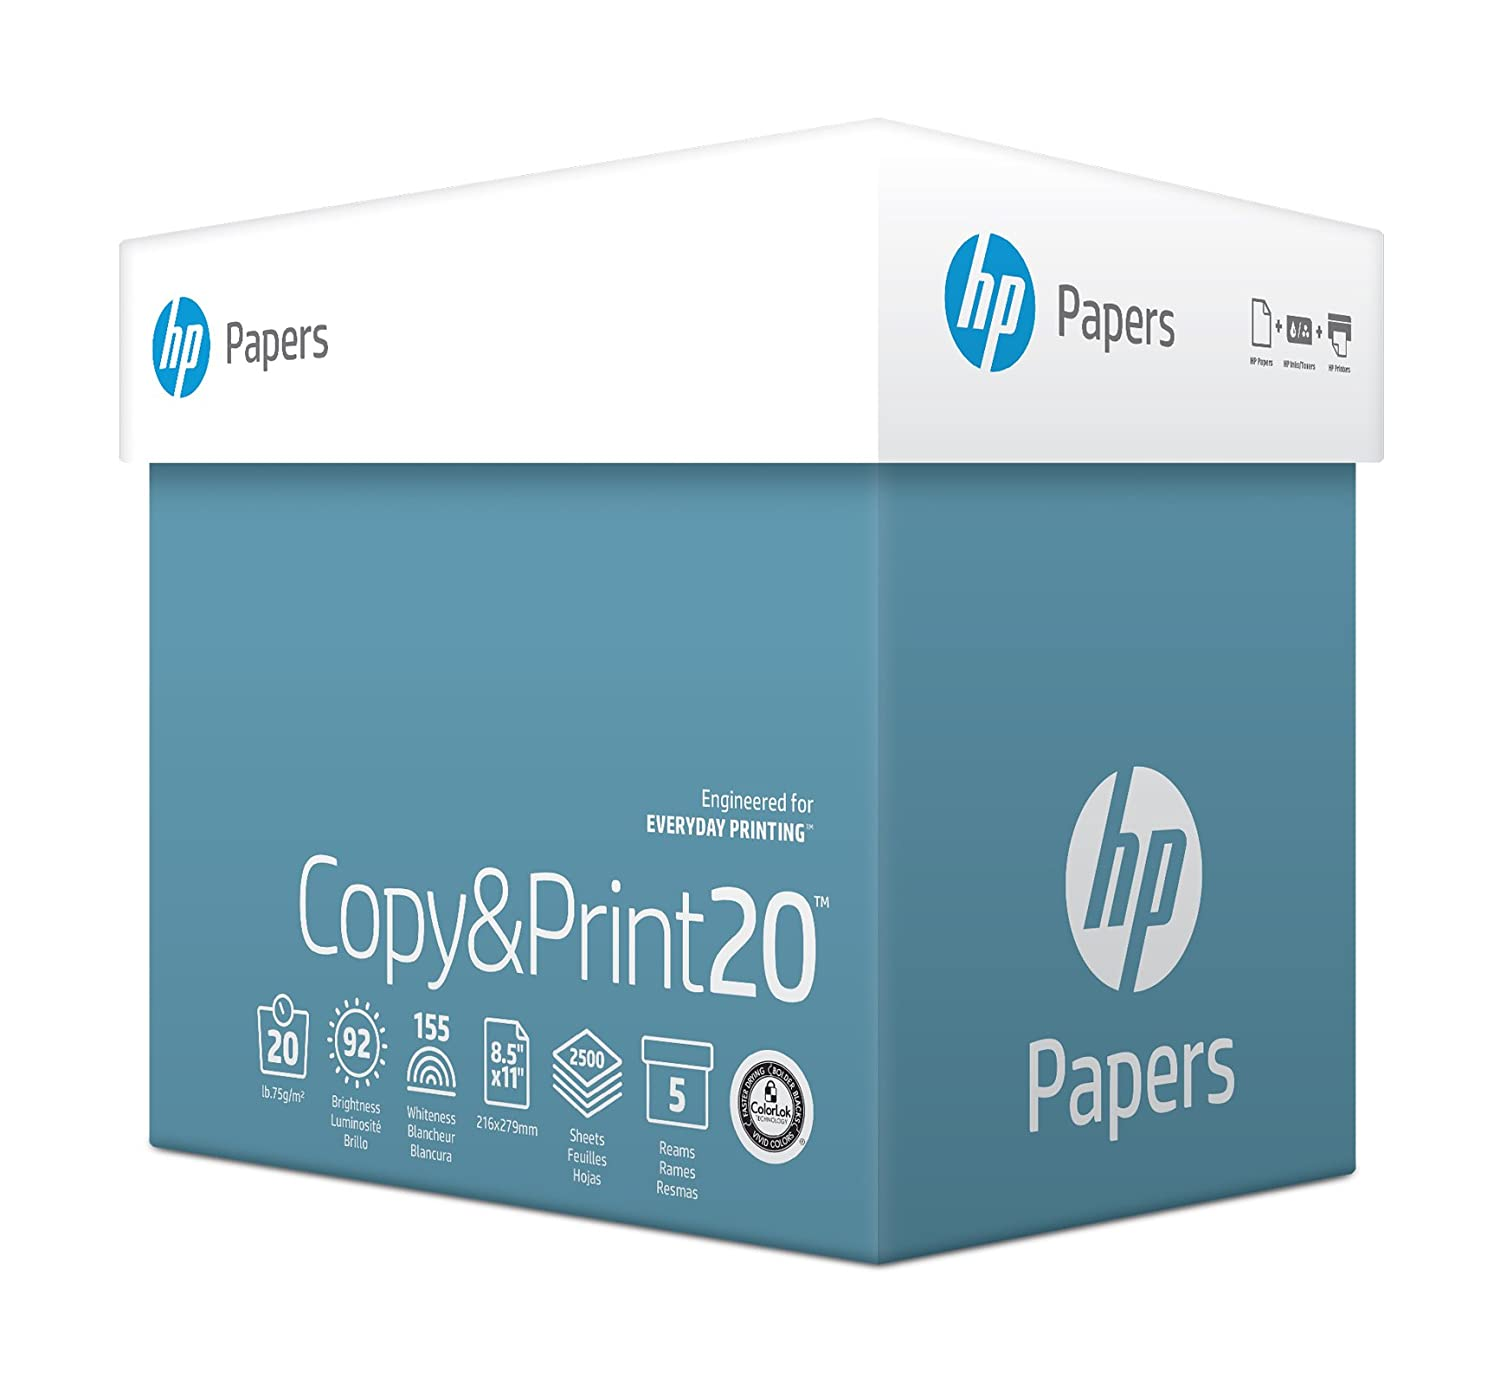 HP Printer Paper, Copy and Print20, 8.5 x 11 Paper, Letter Size, 20lb Paper, 92 Bright, 2,500 Sheets / 5 Ream Carton (200350C) Acid Free Paper